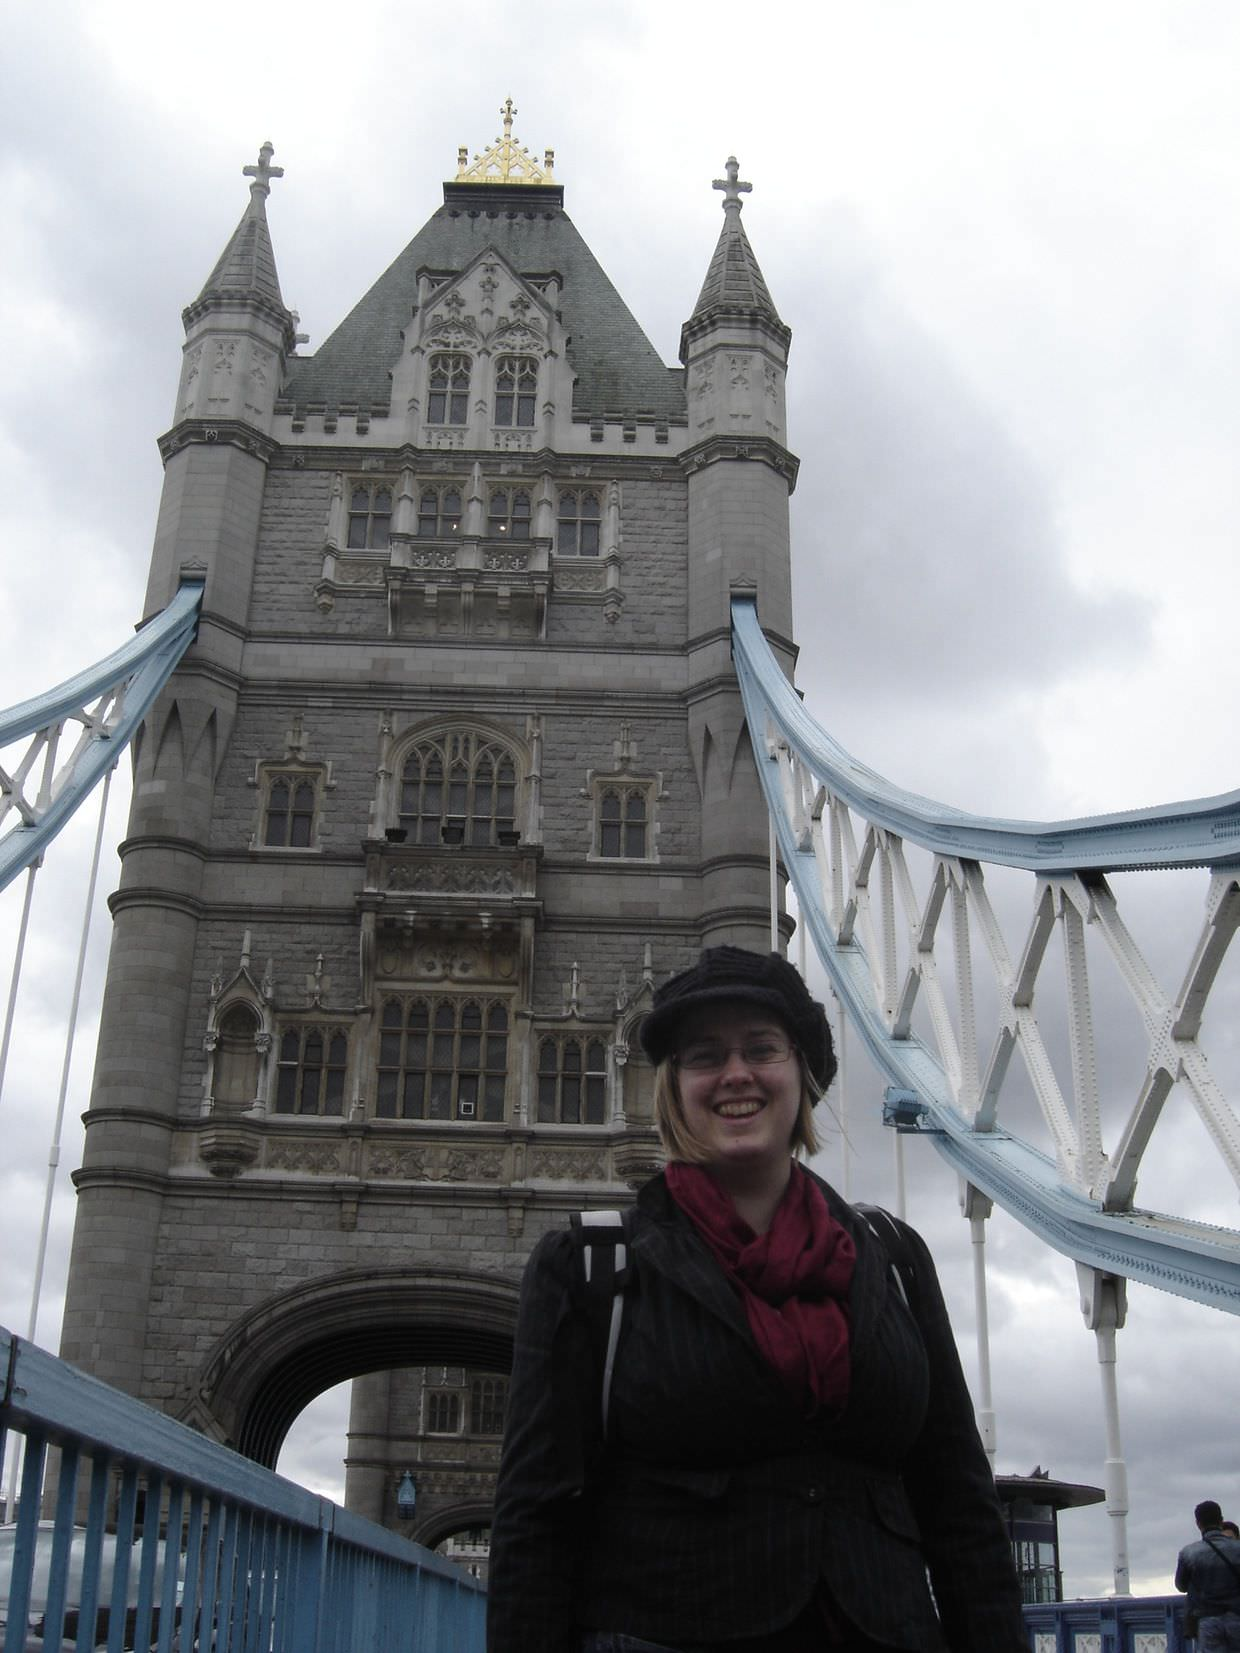 Samantha on London's tower bridge